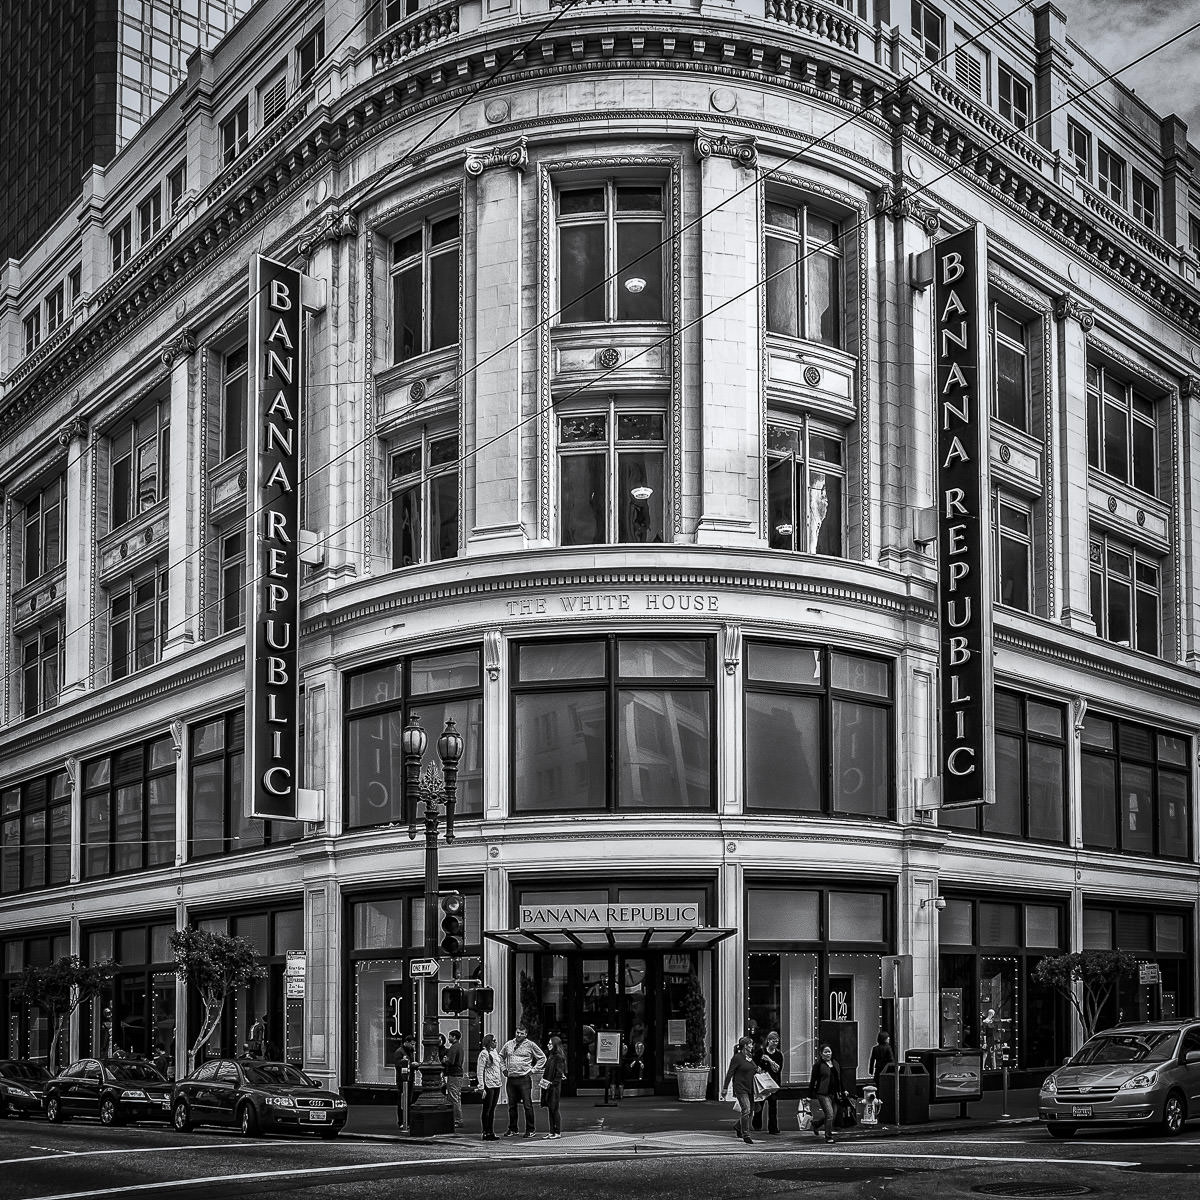 A Banana Republic housed in a 1910 Beaux Arts-style building that once housed the Raphael Weill & Company dry goods store and known as The White House near Downtown San Francisco.